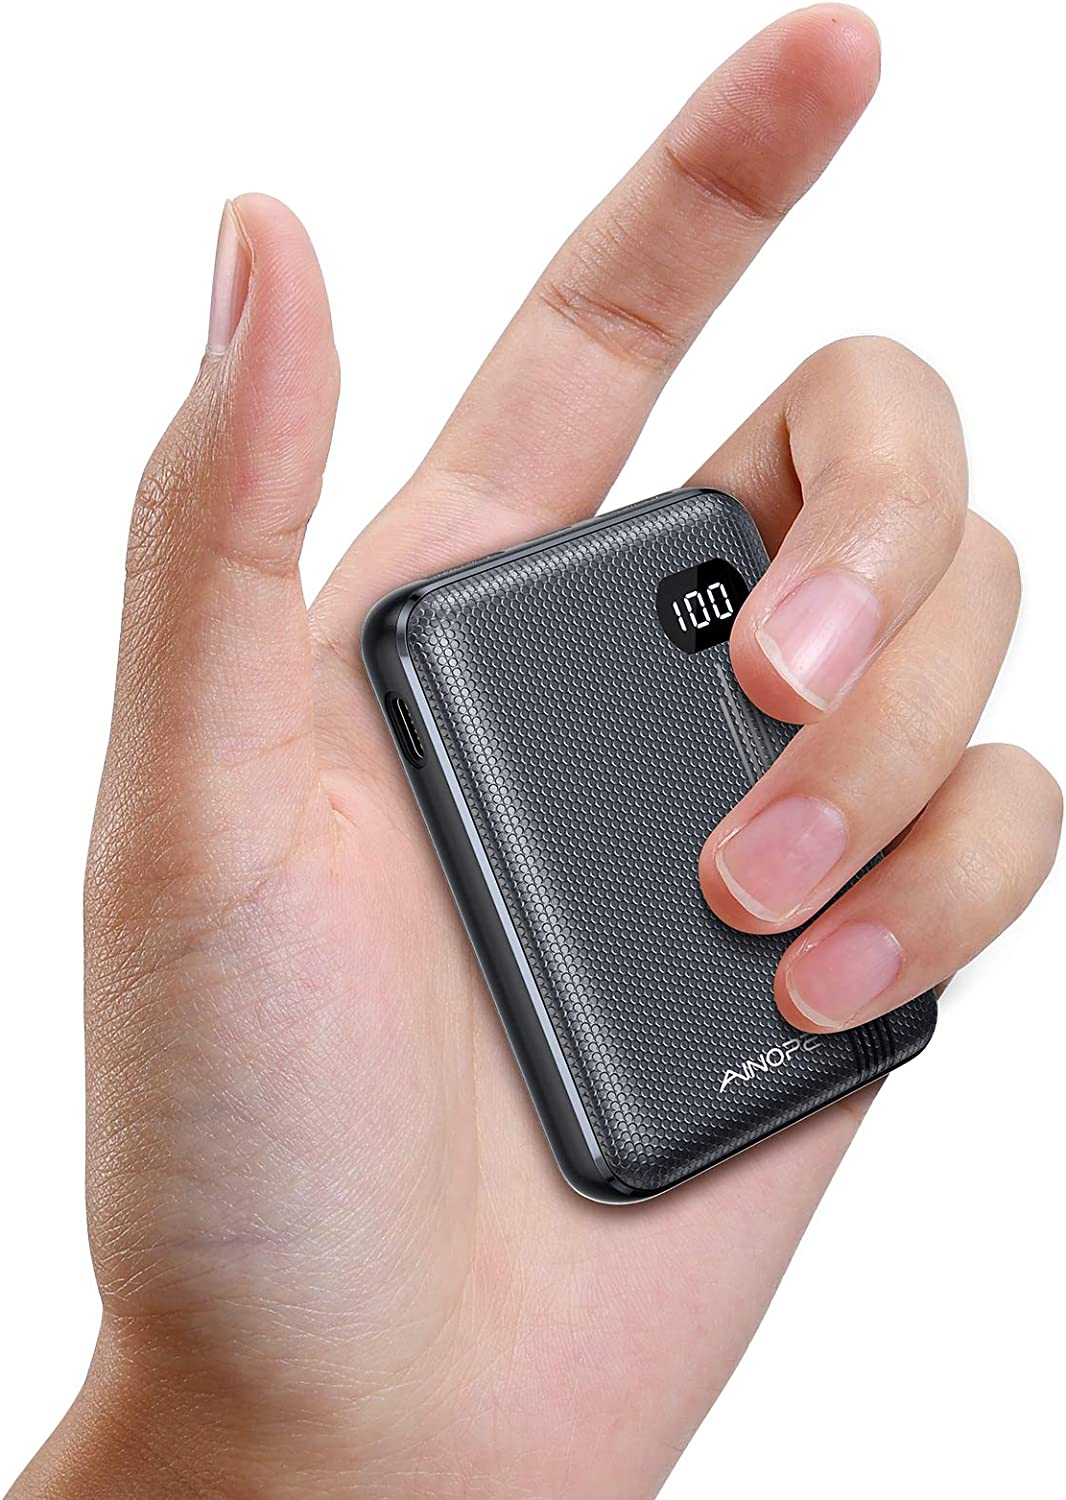 handheld portable battery charger